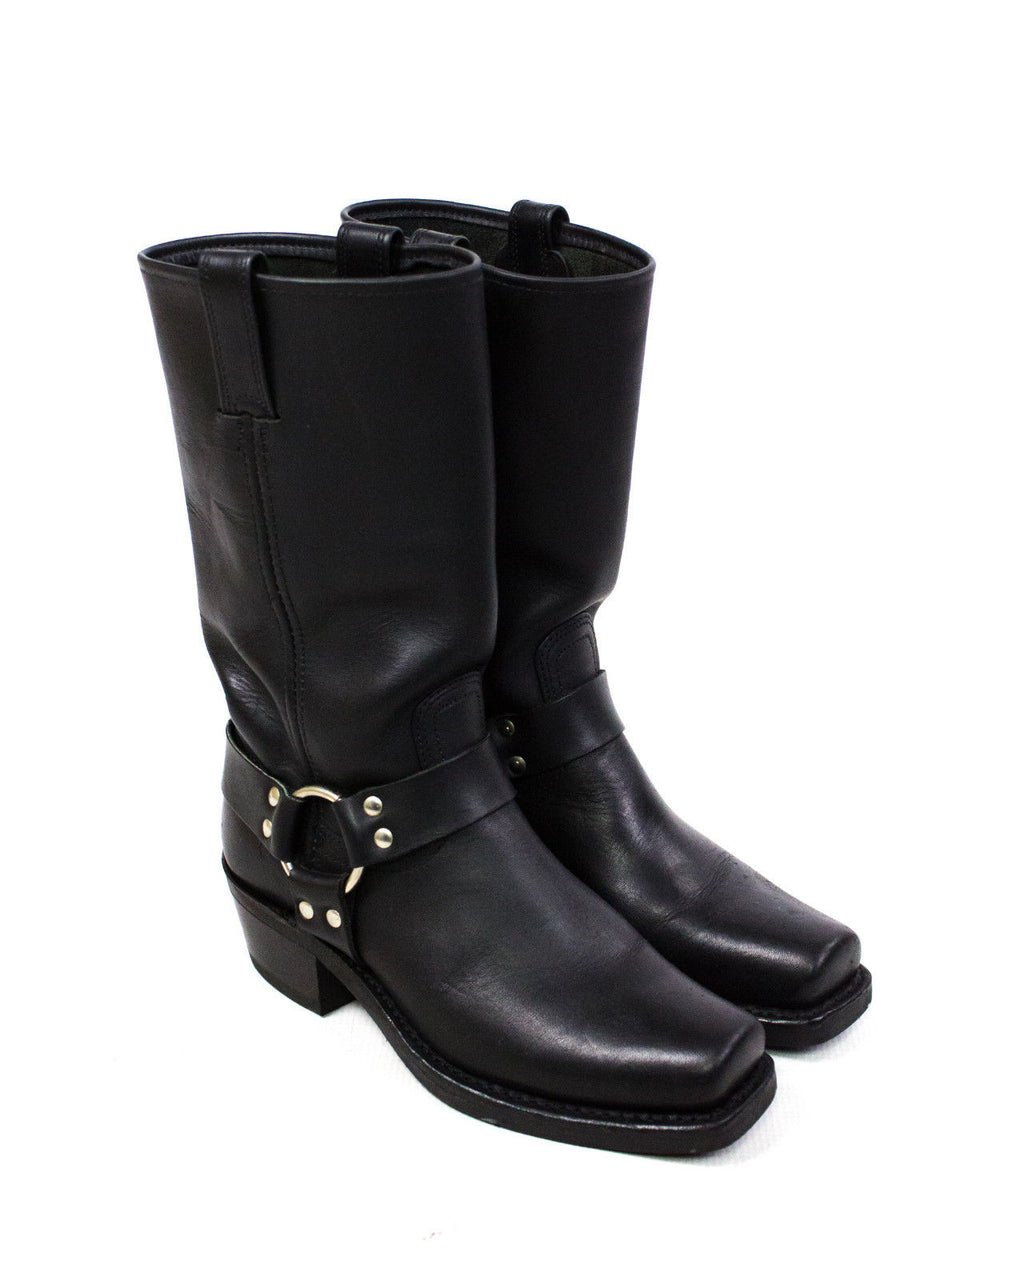 FRYE Harness 12R Black Heritage Leather Boots, US 8M - secondfirst